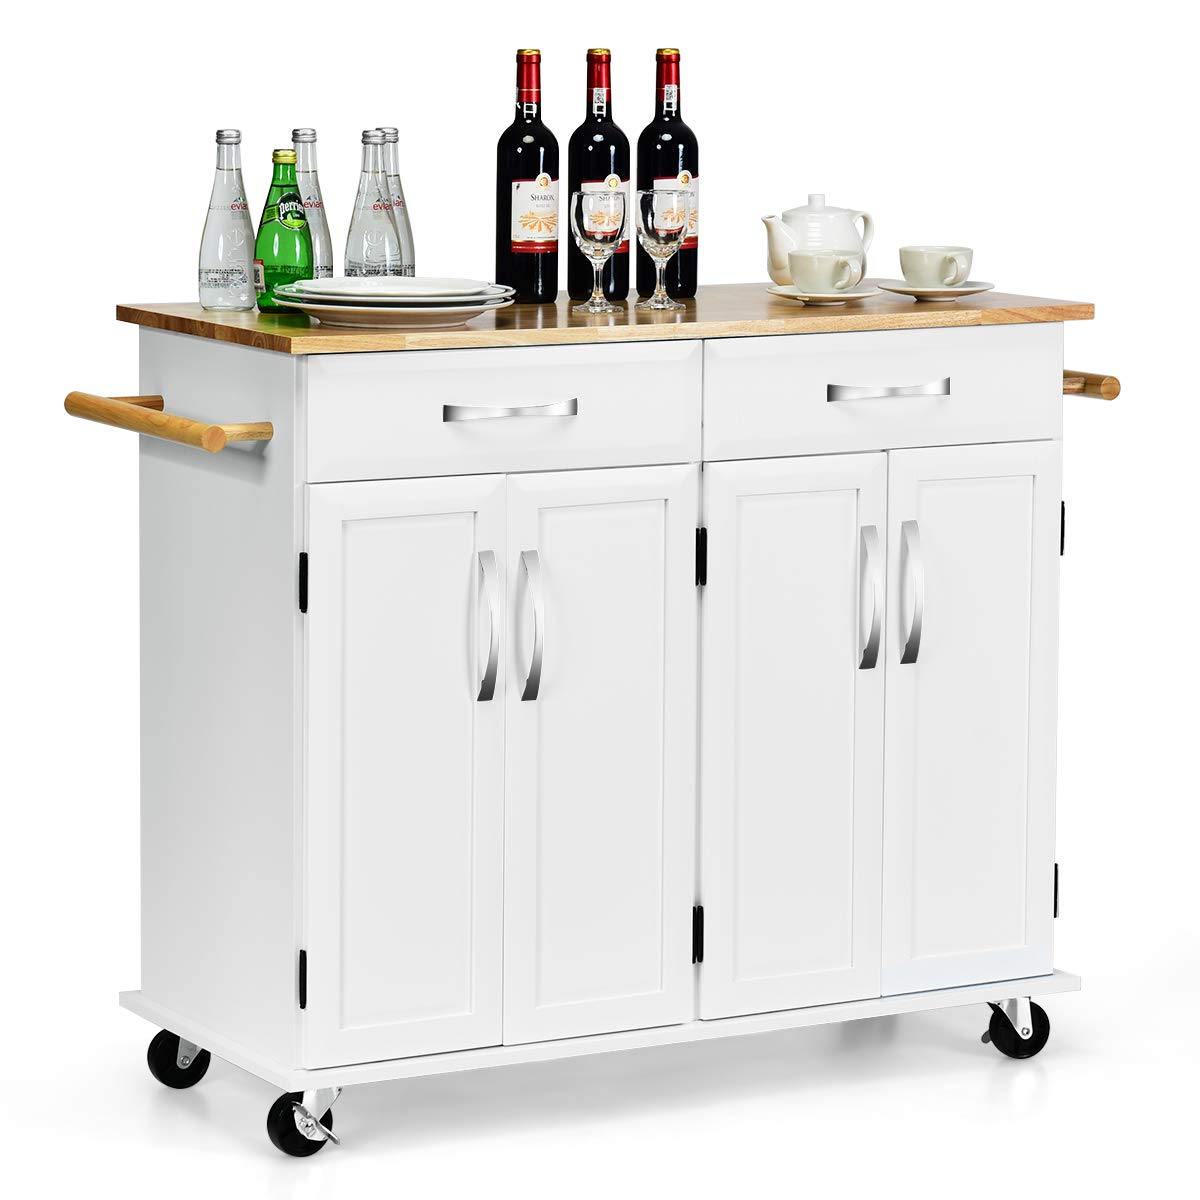 Giantex Kitchen Trolley Cart, Rolling Utility Island w/Rubber Wood Top, Large Storage Easy-Clean with Smooth Lockable Wheels Home Kitchen Carts (White)